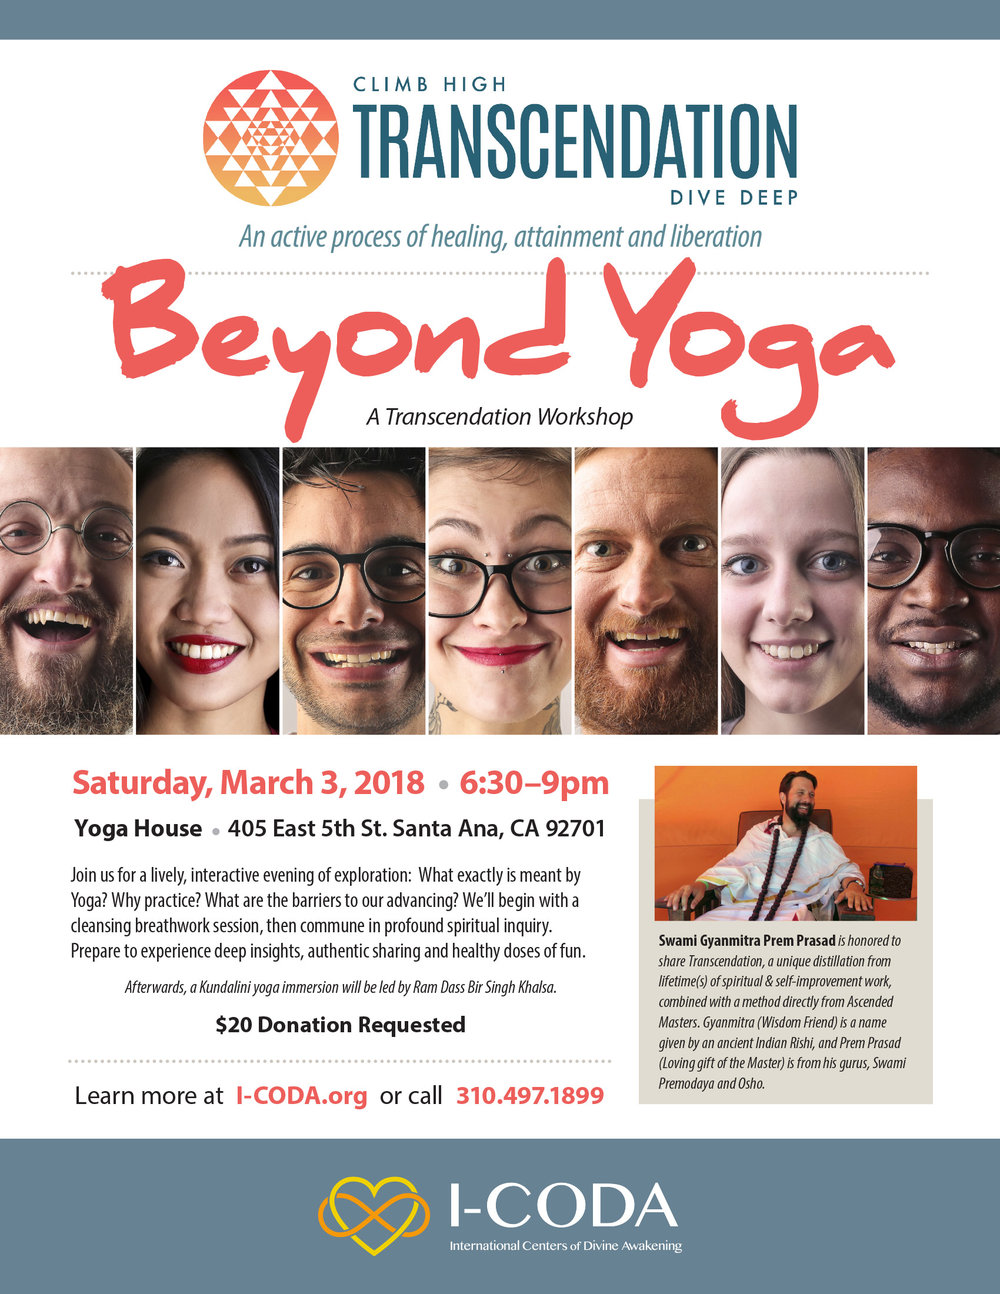 Beyond-Yoga-Flyer-Nov-011618.jpg